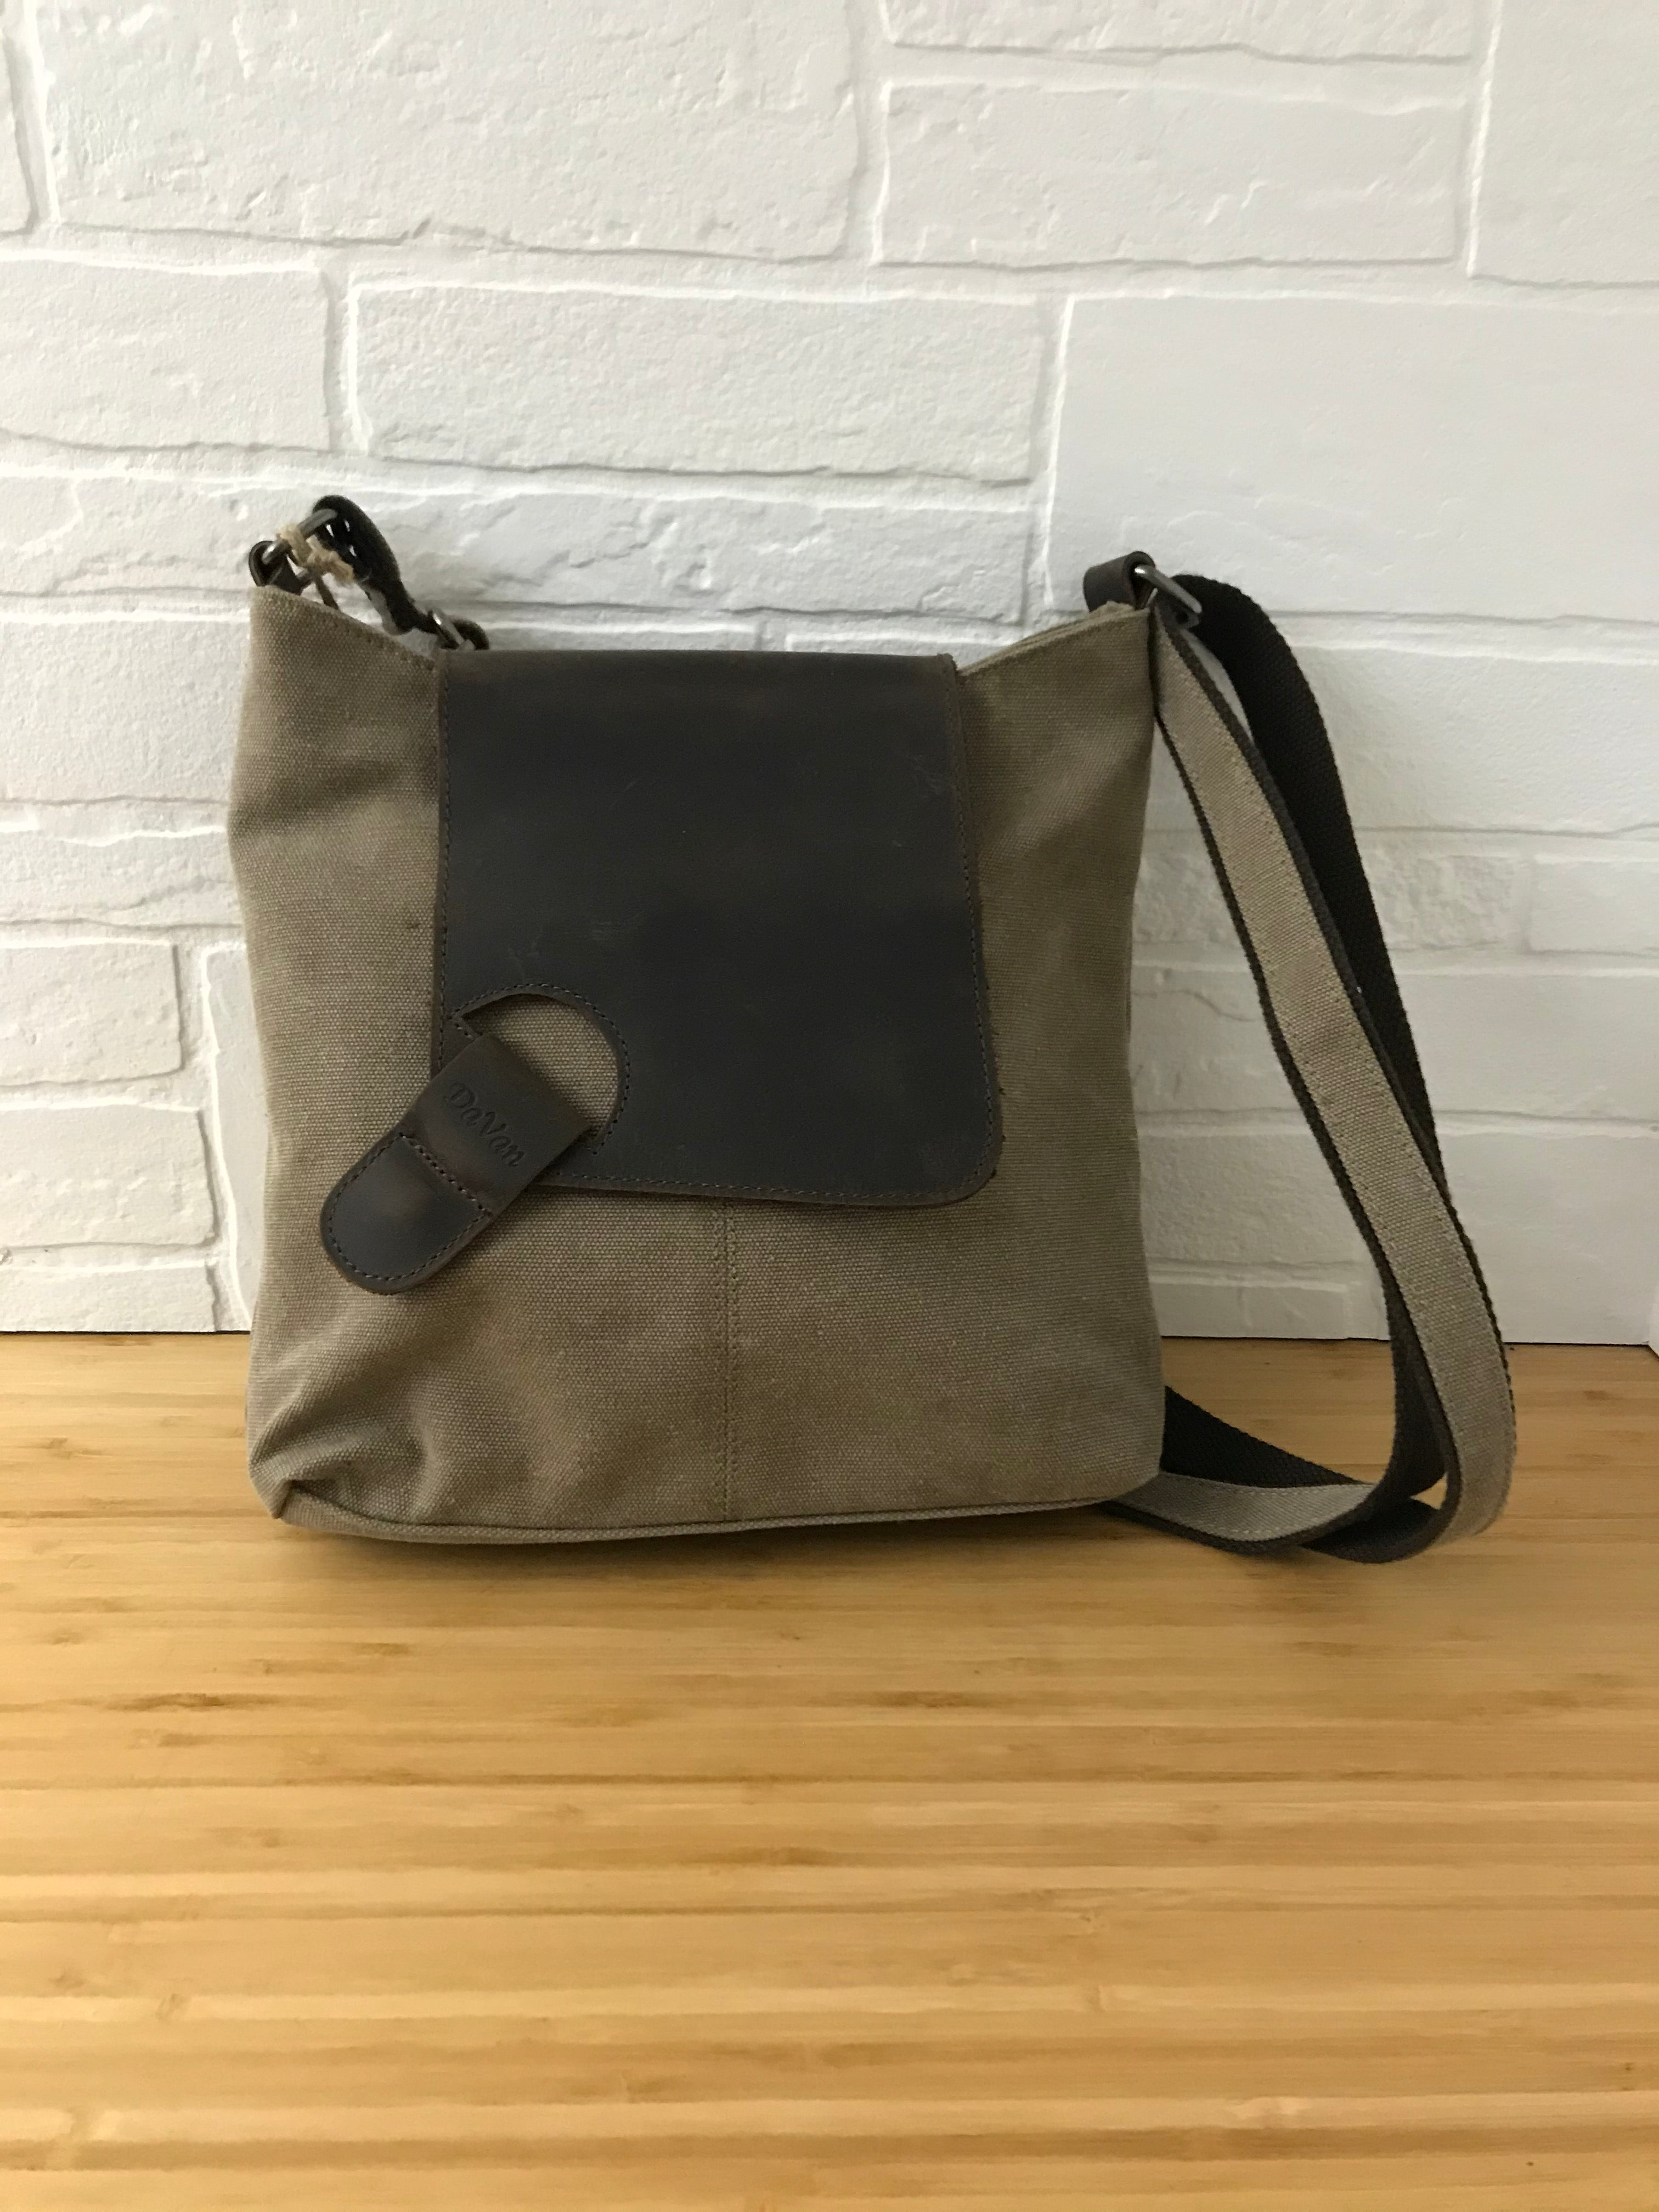 daVan shoulder bag